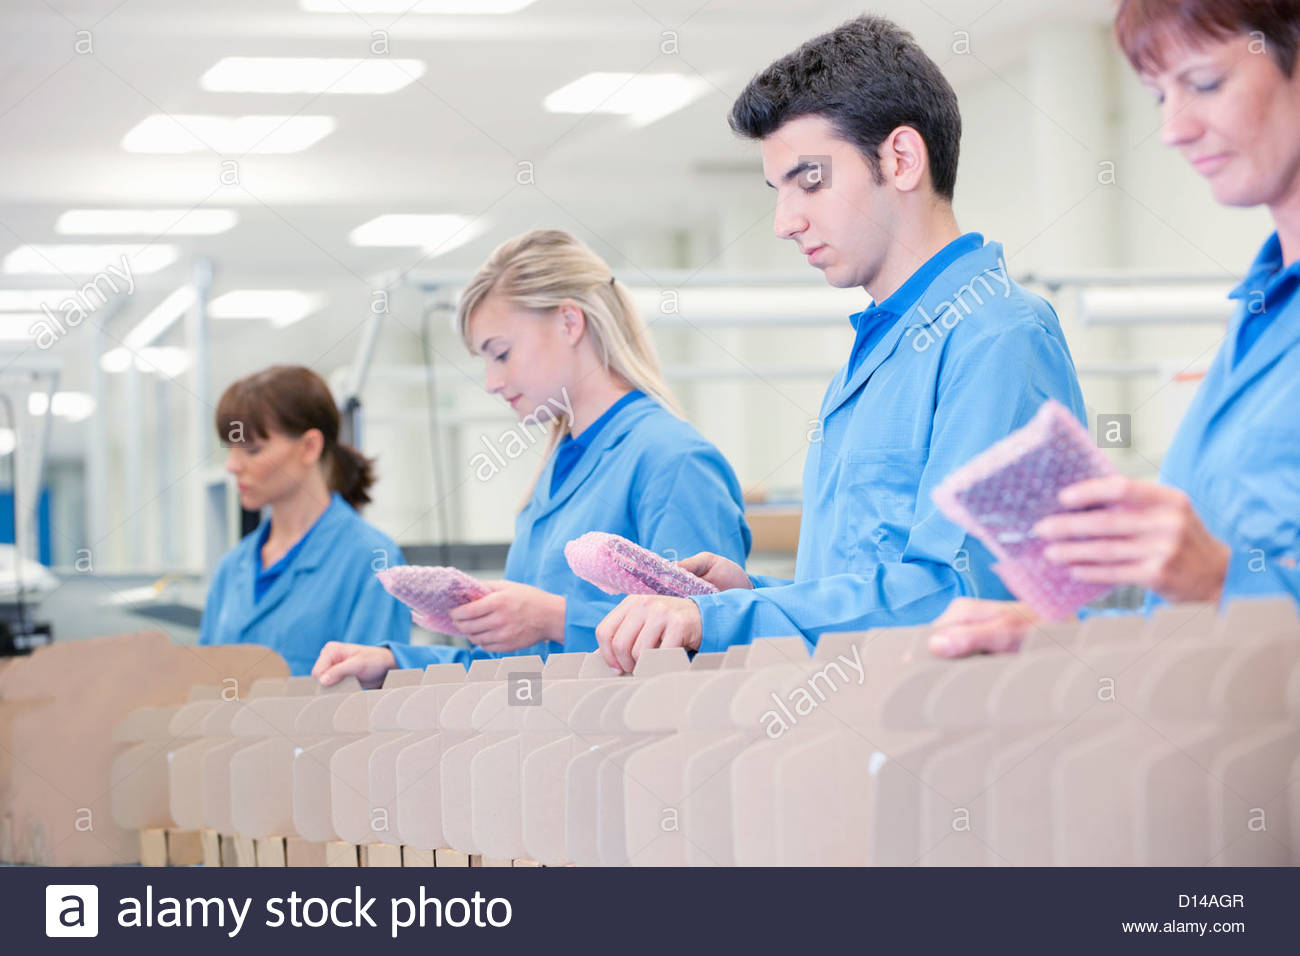 Workers packing products in manufacturing plant - Stock Image